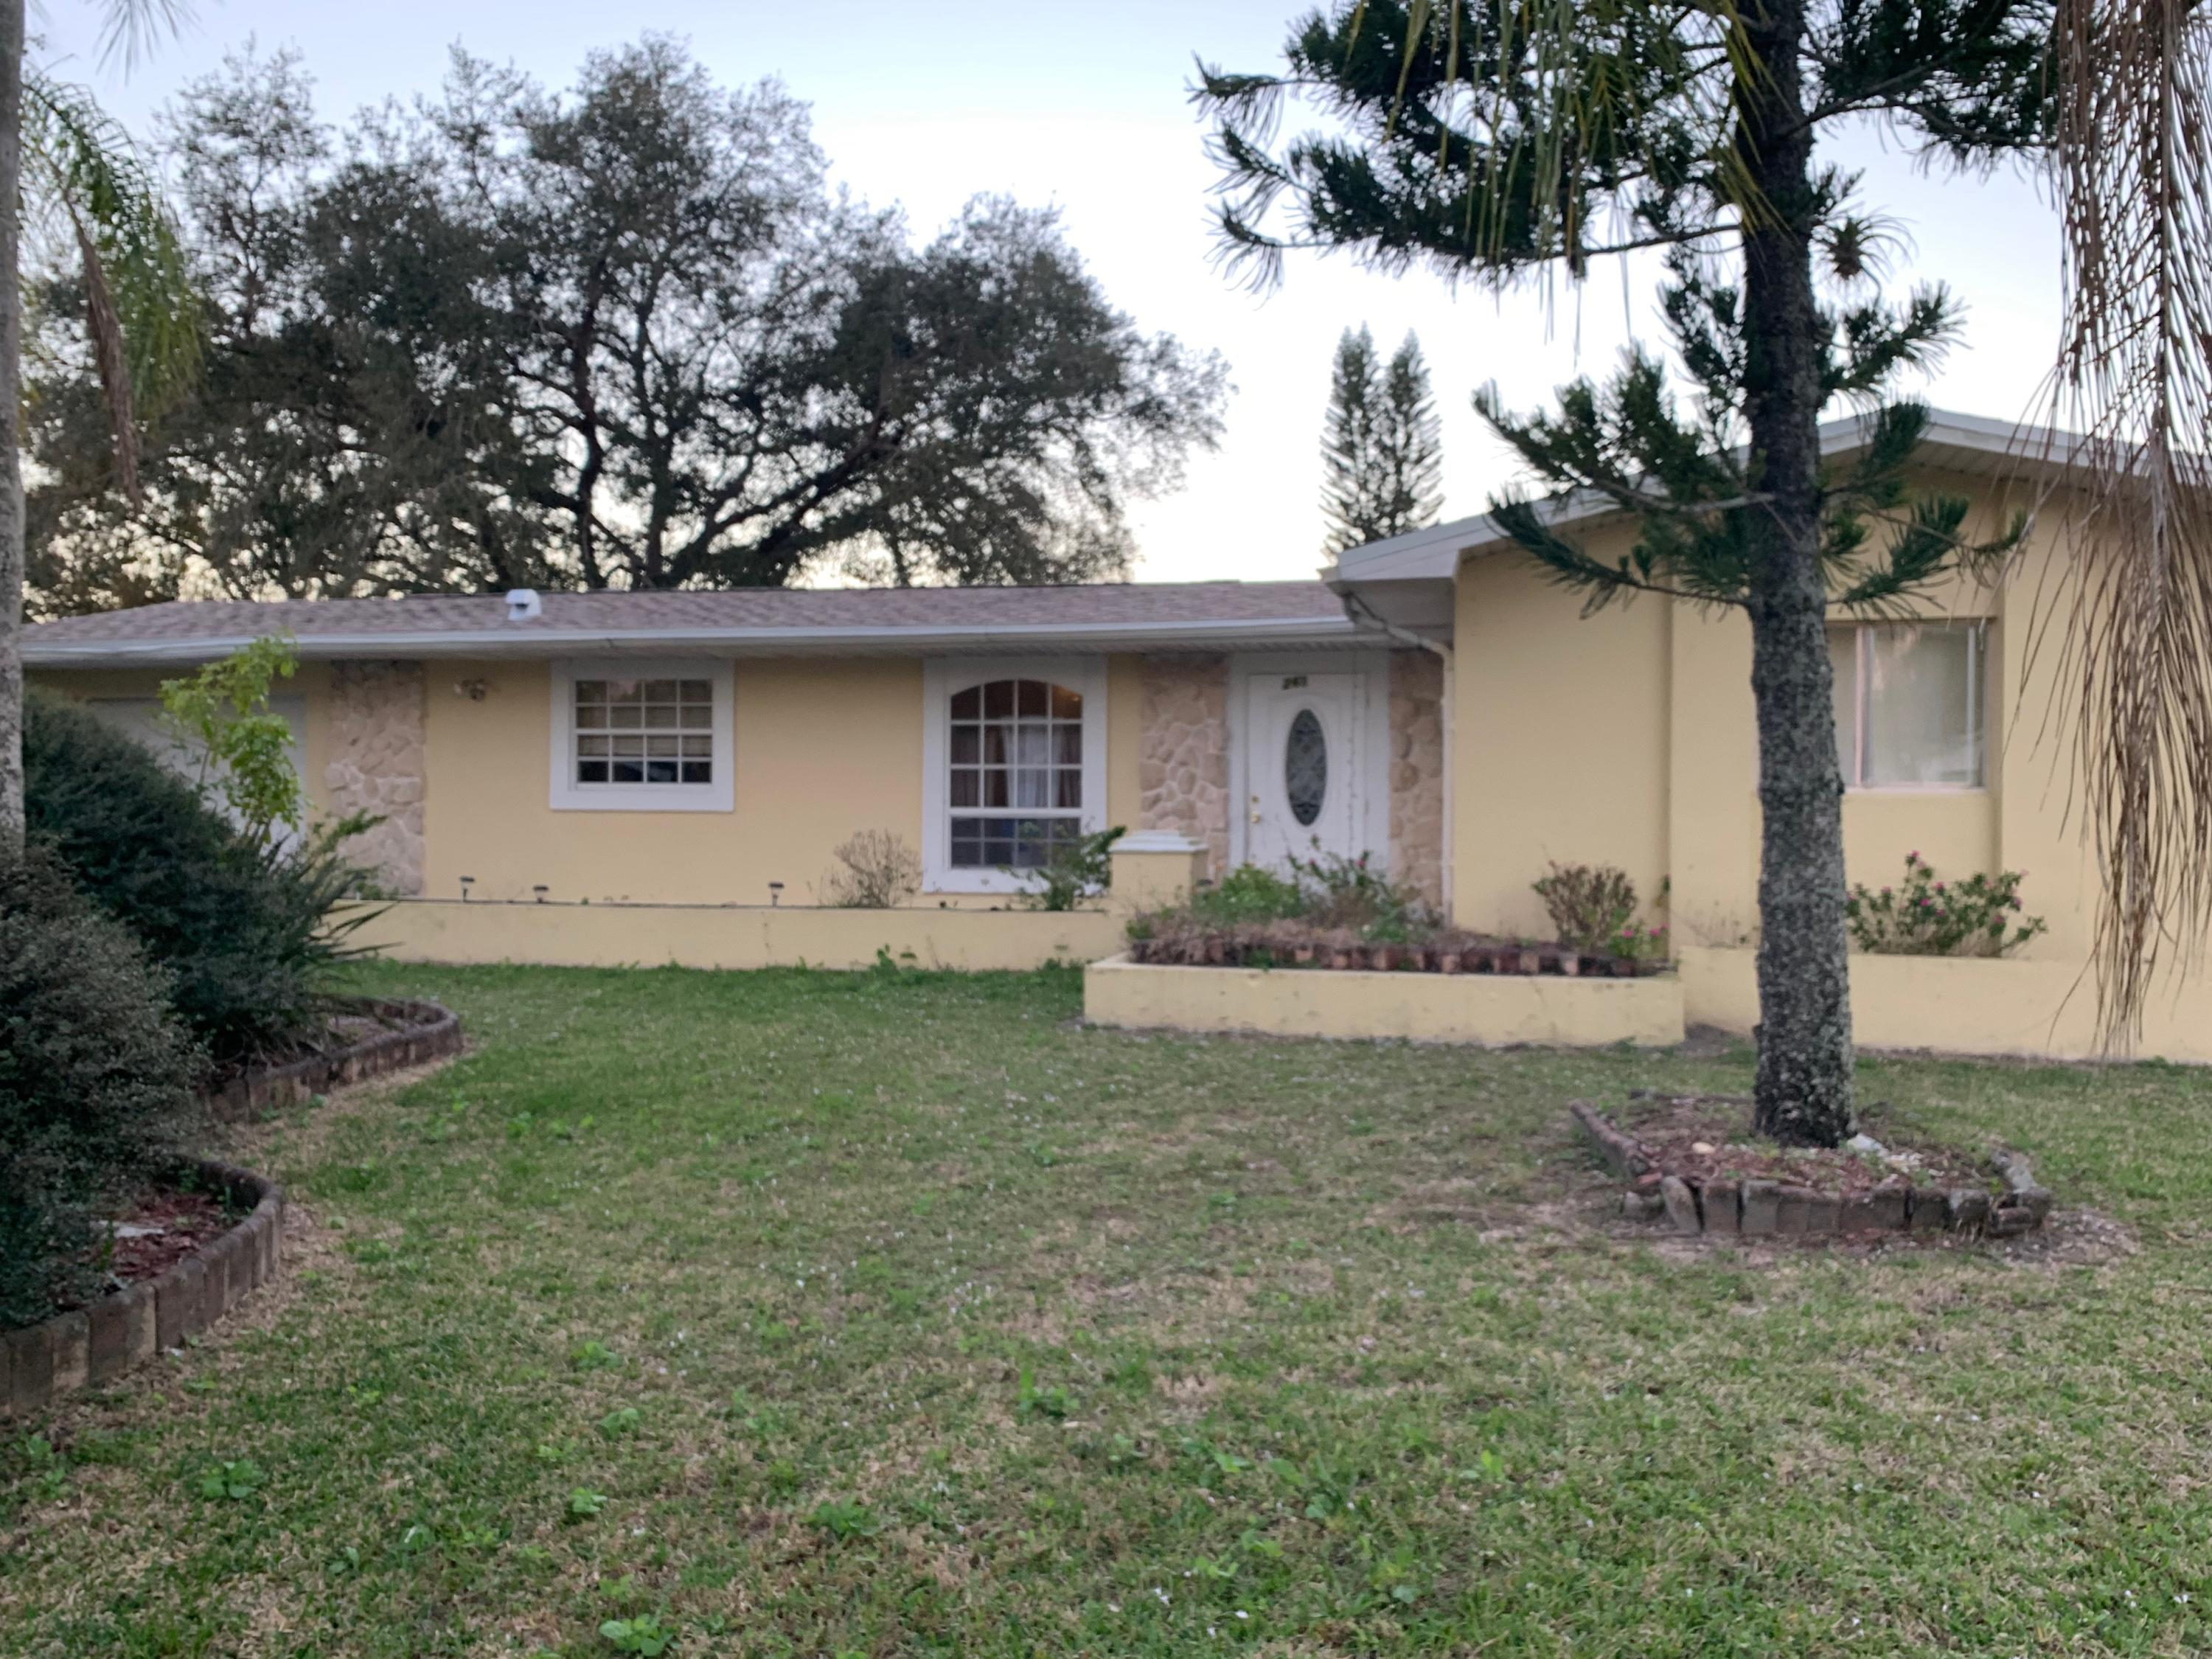 This house offers a 4 bedroom and 2 full bath and 1 car garage. There is a separate entry on the side of the house to the back bedroom if you wanted to rent it out for additional income. The property has county taxes but has city water and sewer. Located close to 25th St.  US1, and miles to interstate 95. Don't let this property pass you by, great for primary or investment property.